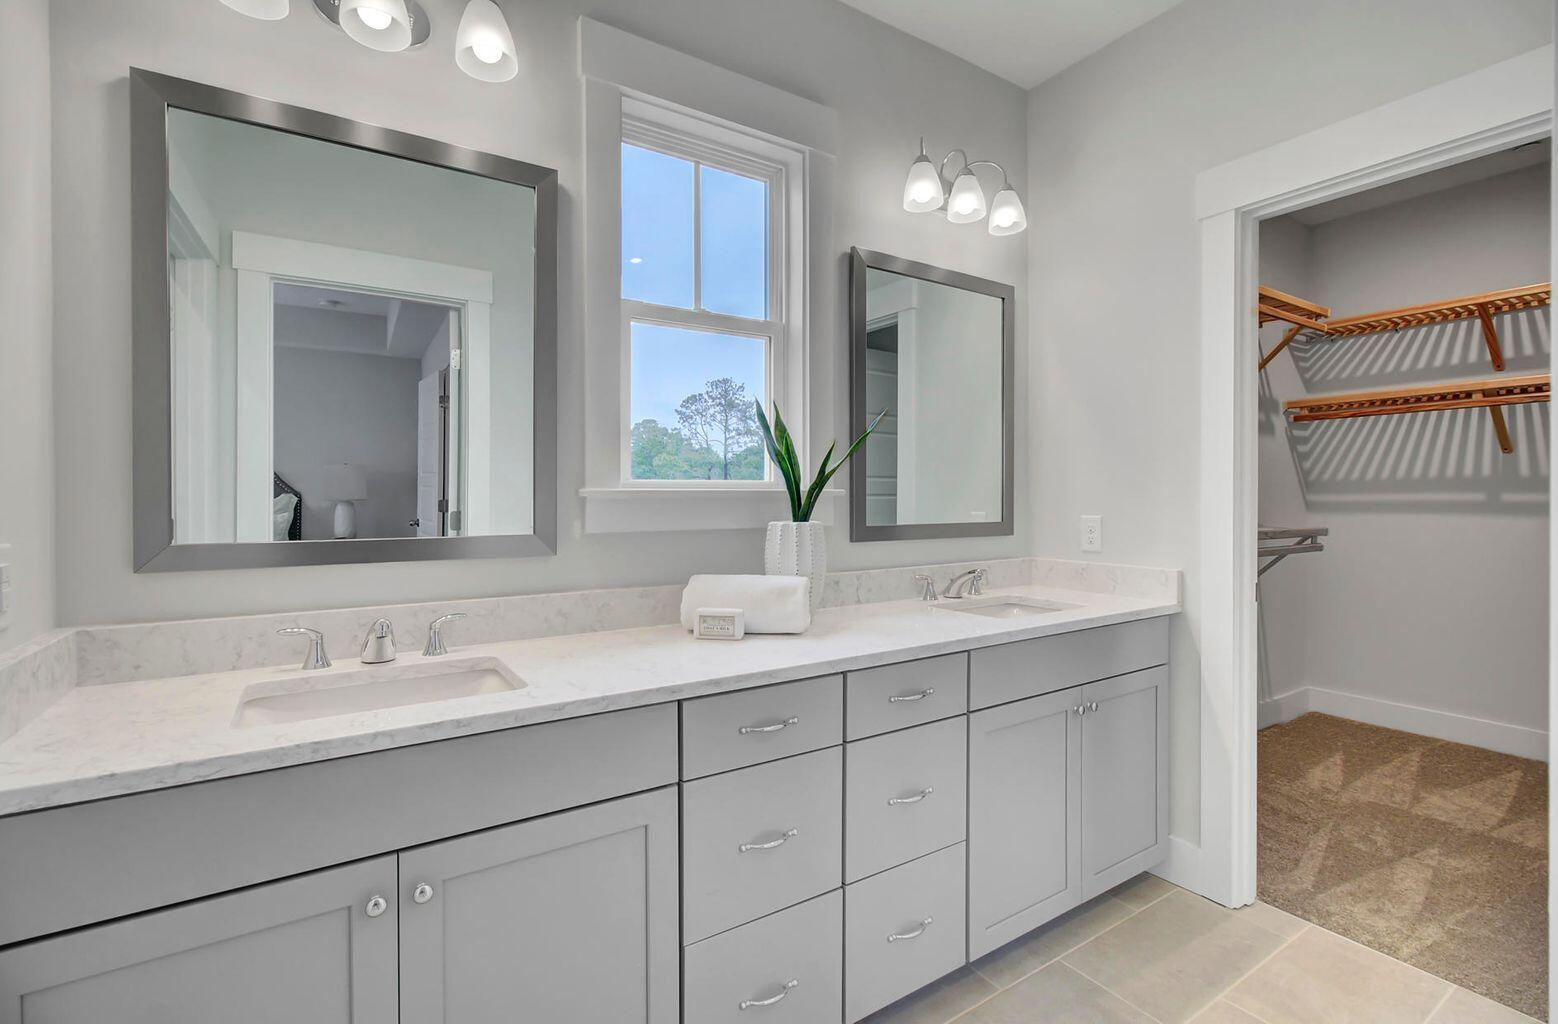 The Cove at Folly Homes For Sale - 2139 Tides End, Charleston, SC - 29